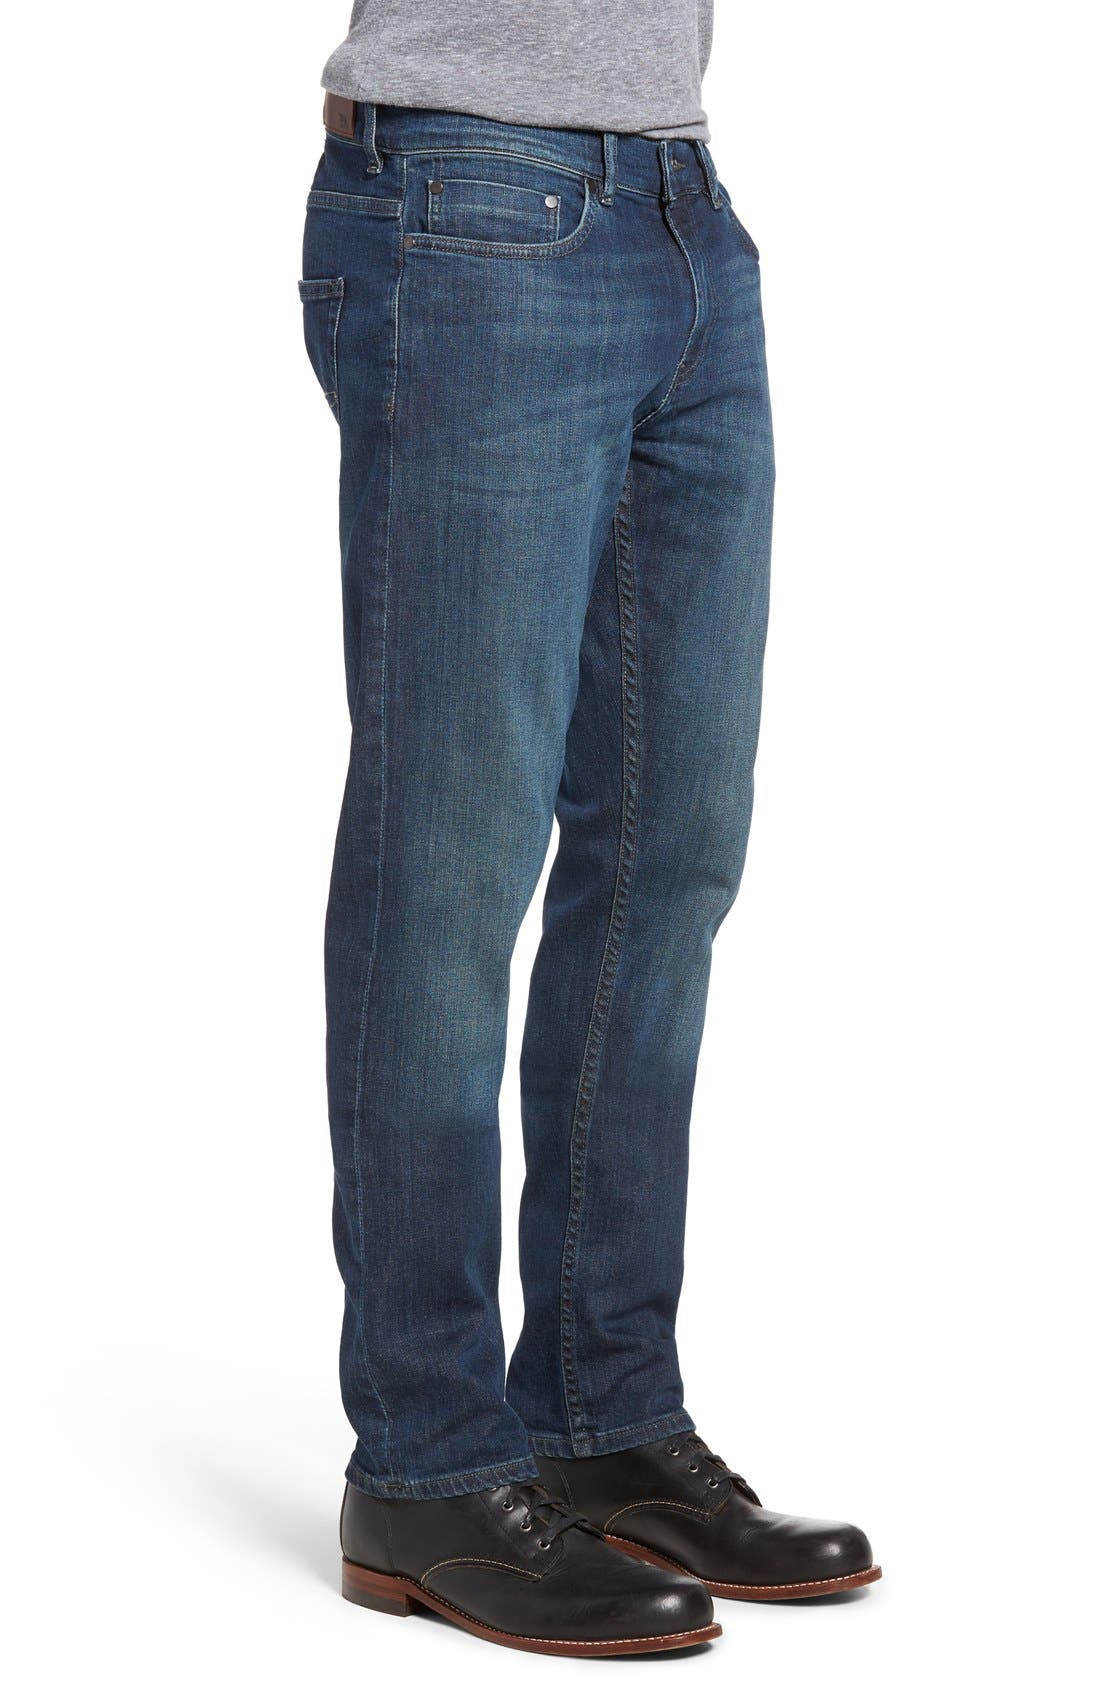 Calvert Slim Fit Jeans,                             Alternate thumbnail 3, color,                             400